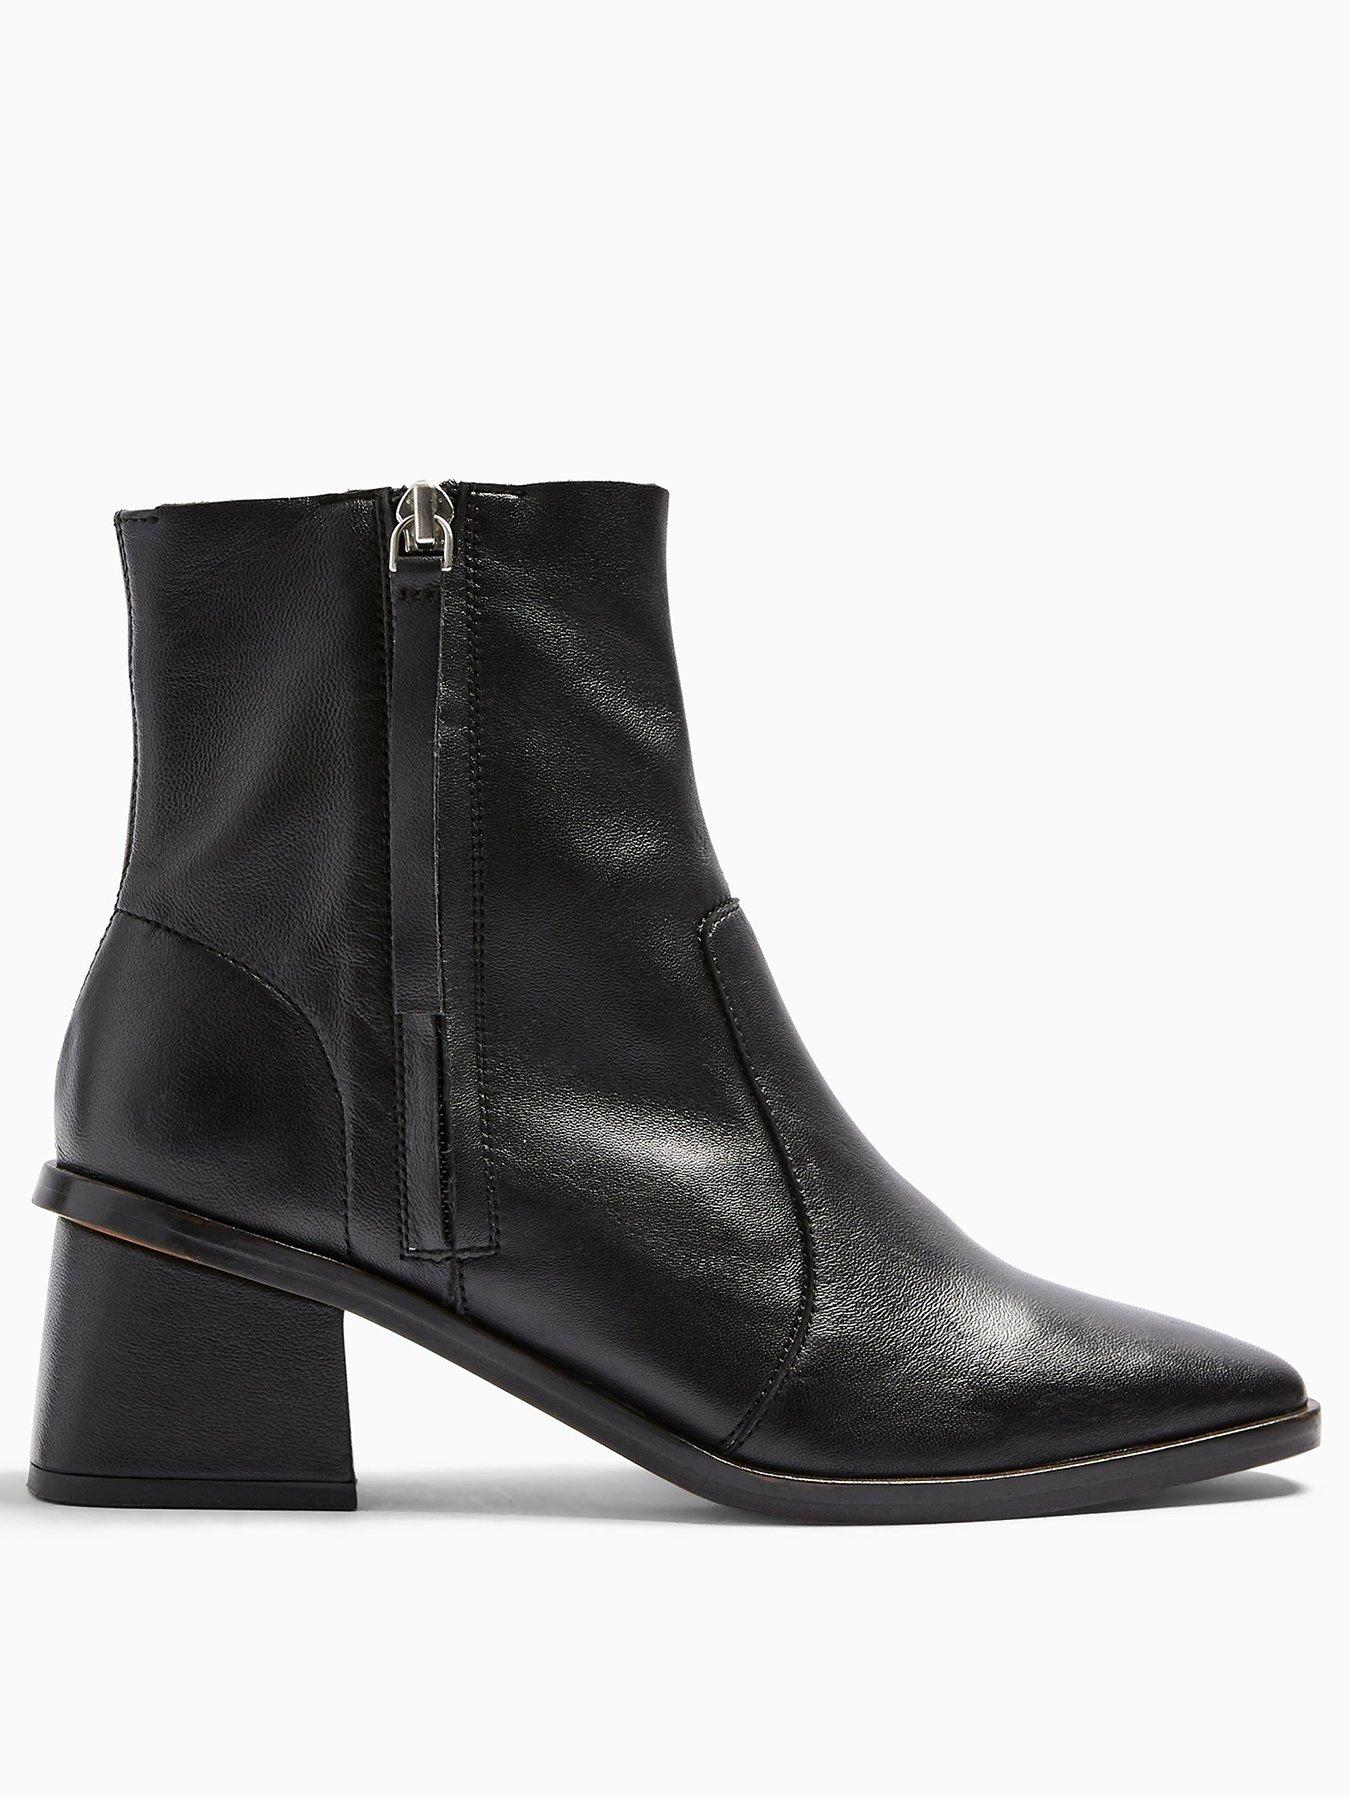 Topshop Margot Side Zip Leather Ankle